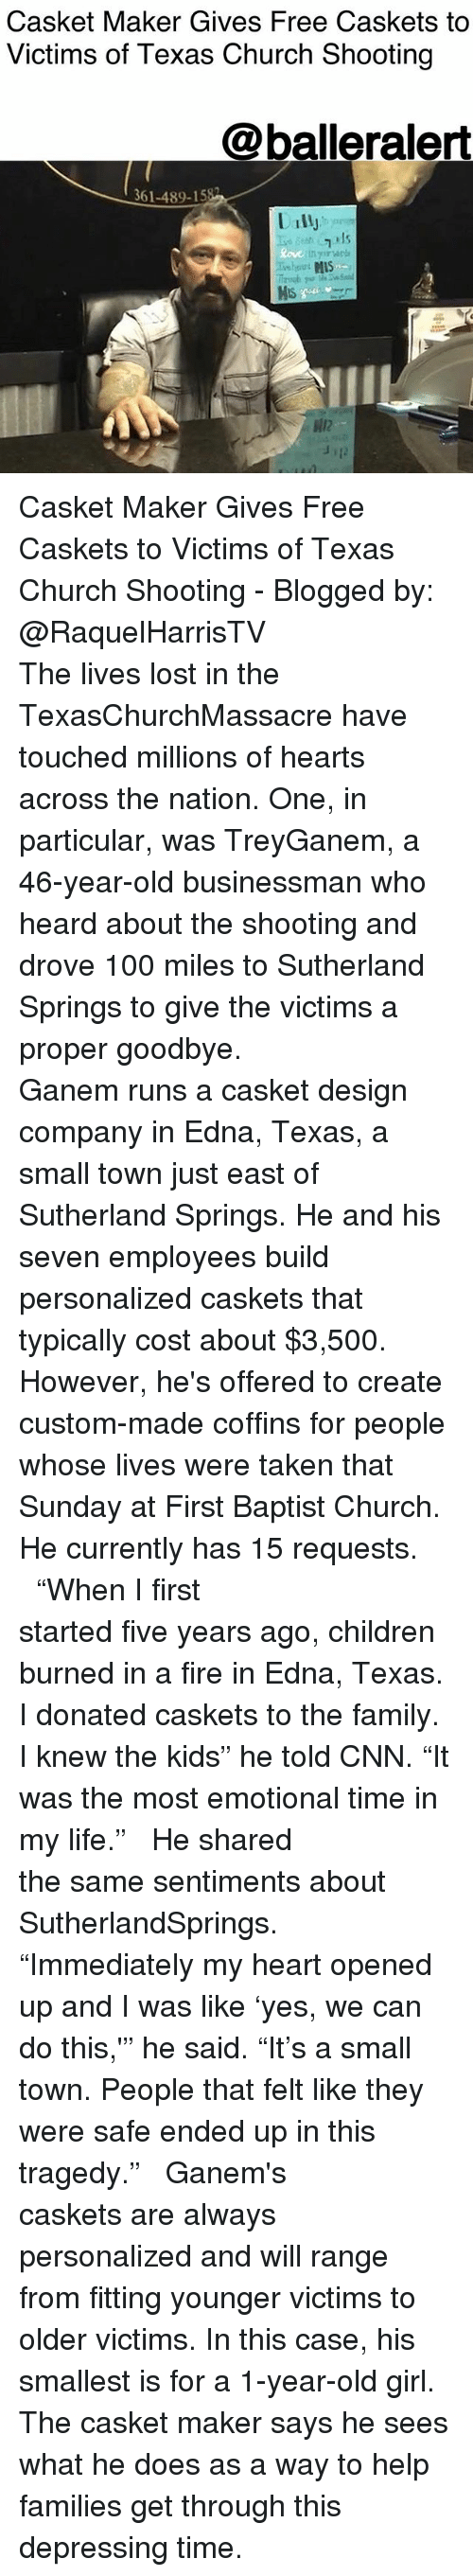 "Anaconda, Children, and Church: Casket Maker Gives Free Caskets to  Victims of Texas Church Shooting  @balleralert  361-489-15  Dally  12  12 Casket Maker Gives Free Caskets to Victims of Texas Church Shooting - Blogged by: @RaquelHarrisTV ⠀⠀⠀⠀⠀⠀⠀⠀⠀ ⠀⠀⠀⠀⠀⠀⠀⠀⠀ The lives lost in the TexasChurchMassacre have touched millions of hearts across the nation. One, in particular, was TreyGanem, a 46-year-old businessman who heard about the shooting and drove 100 miles to Sutherland Springs to give the victims a proper goodbye. ⠀⠀⠀⠀⠀⠀⠀⠀⠀ ⠀⠀⠀⠀⠀⠀⠀⠀⠀ Ganem runs a casket design company in Edna, Texas, a small town just east of Sutherland Springs. He and his seven employees build personalized caskets that typically cost about $3,500. However, he's offered to create custom-made coffins for people whose lives were taken that Sunday at First Baptist Church. He currently has 15 requests. ⠀⠀⠀⠀⠀⠀⠀⠀⠀ ⠀⠀⠀⠀⠀⠀⠀⠀⠀ ""When I first started five years ago, children burned in a fire in Edna, Texas. I donated caskets to the family. I knew the kids"" he told CNN. ""It was the most emotional time in my life."" ⠀⠀⠀⠀⠀⠀⠀⠀⠀ ⠀⠀⠀⠀⠀⠀⠀⠀⠀ He shared the same sentiments about SutherlandSprings. ⠀⠀⠀⠀⠀⠀⠀⠀⠀ ⠀⠀⠀⠀⠀⠀⠀⠀⠀ ""Immediately my heart opened up and I was like 'yes, we can do this,'"" he said. ""It's a small town. People that felt like they were safe ended up in this tragedy."" ⠀⠀⠀⠀⠀⠀⠀⠀⠀ ⠀⠀⠀⠀⠀⠀⠀⠀⠀ Ganem's caskets are always personalized and will range from fitting younger victims to older victims. In this case, his smallest is for a 1-year-old girl. The casket maker says he sees what he does as a way to help families get through this depressing time."